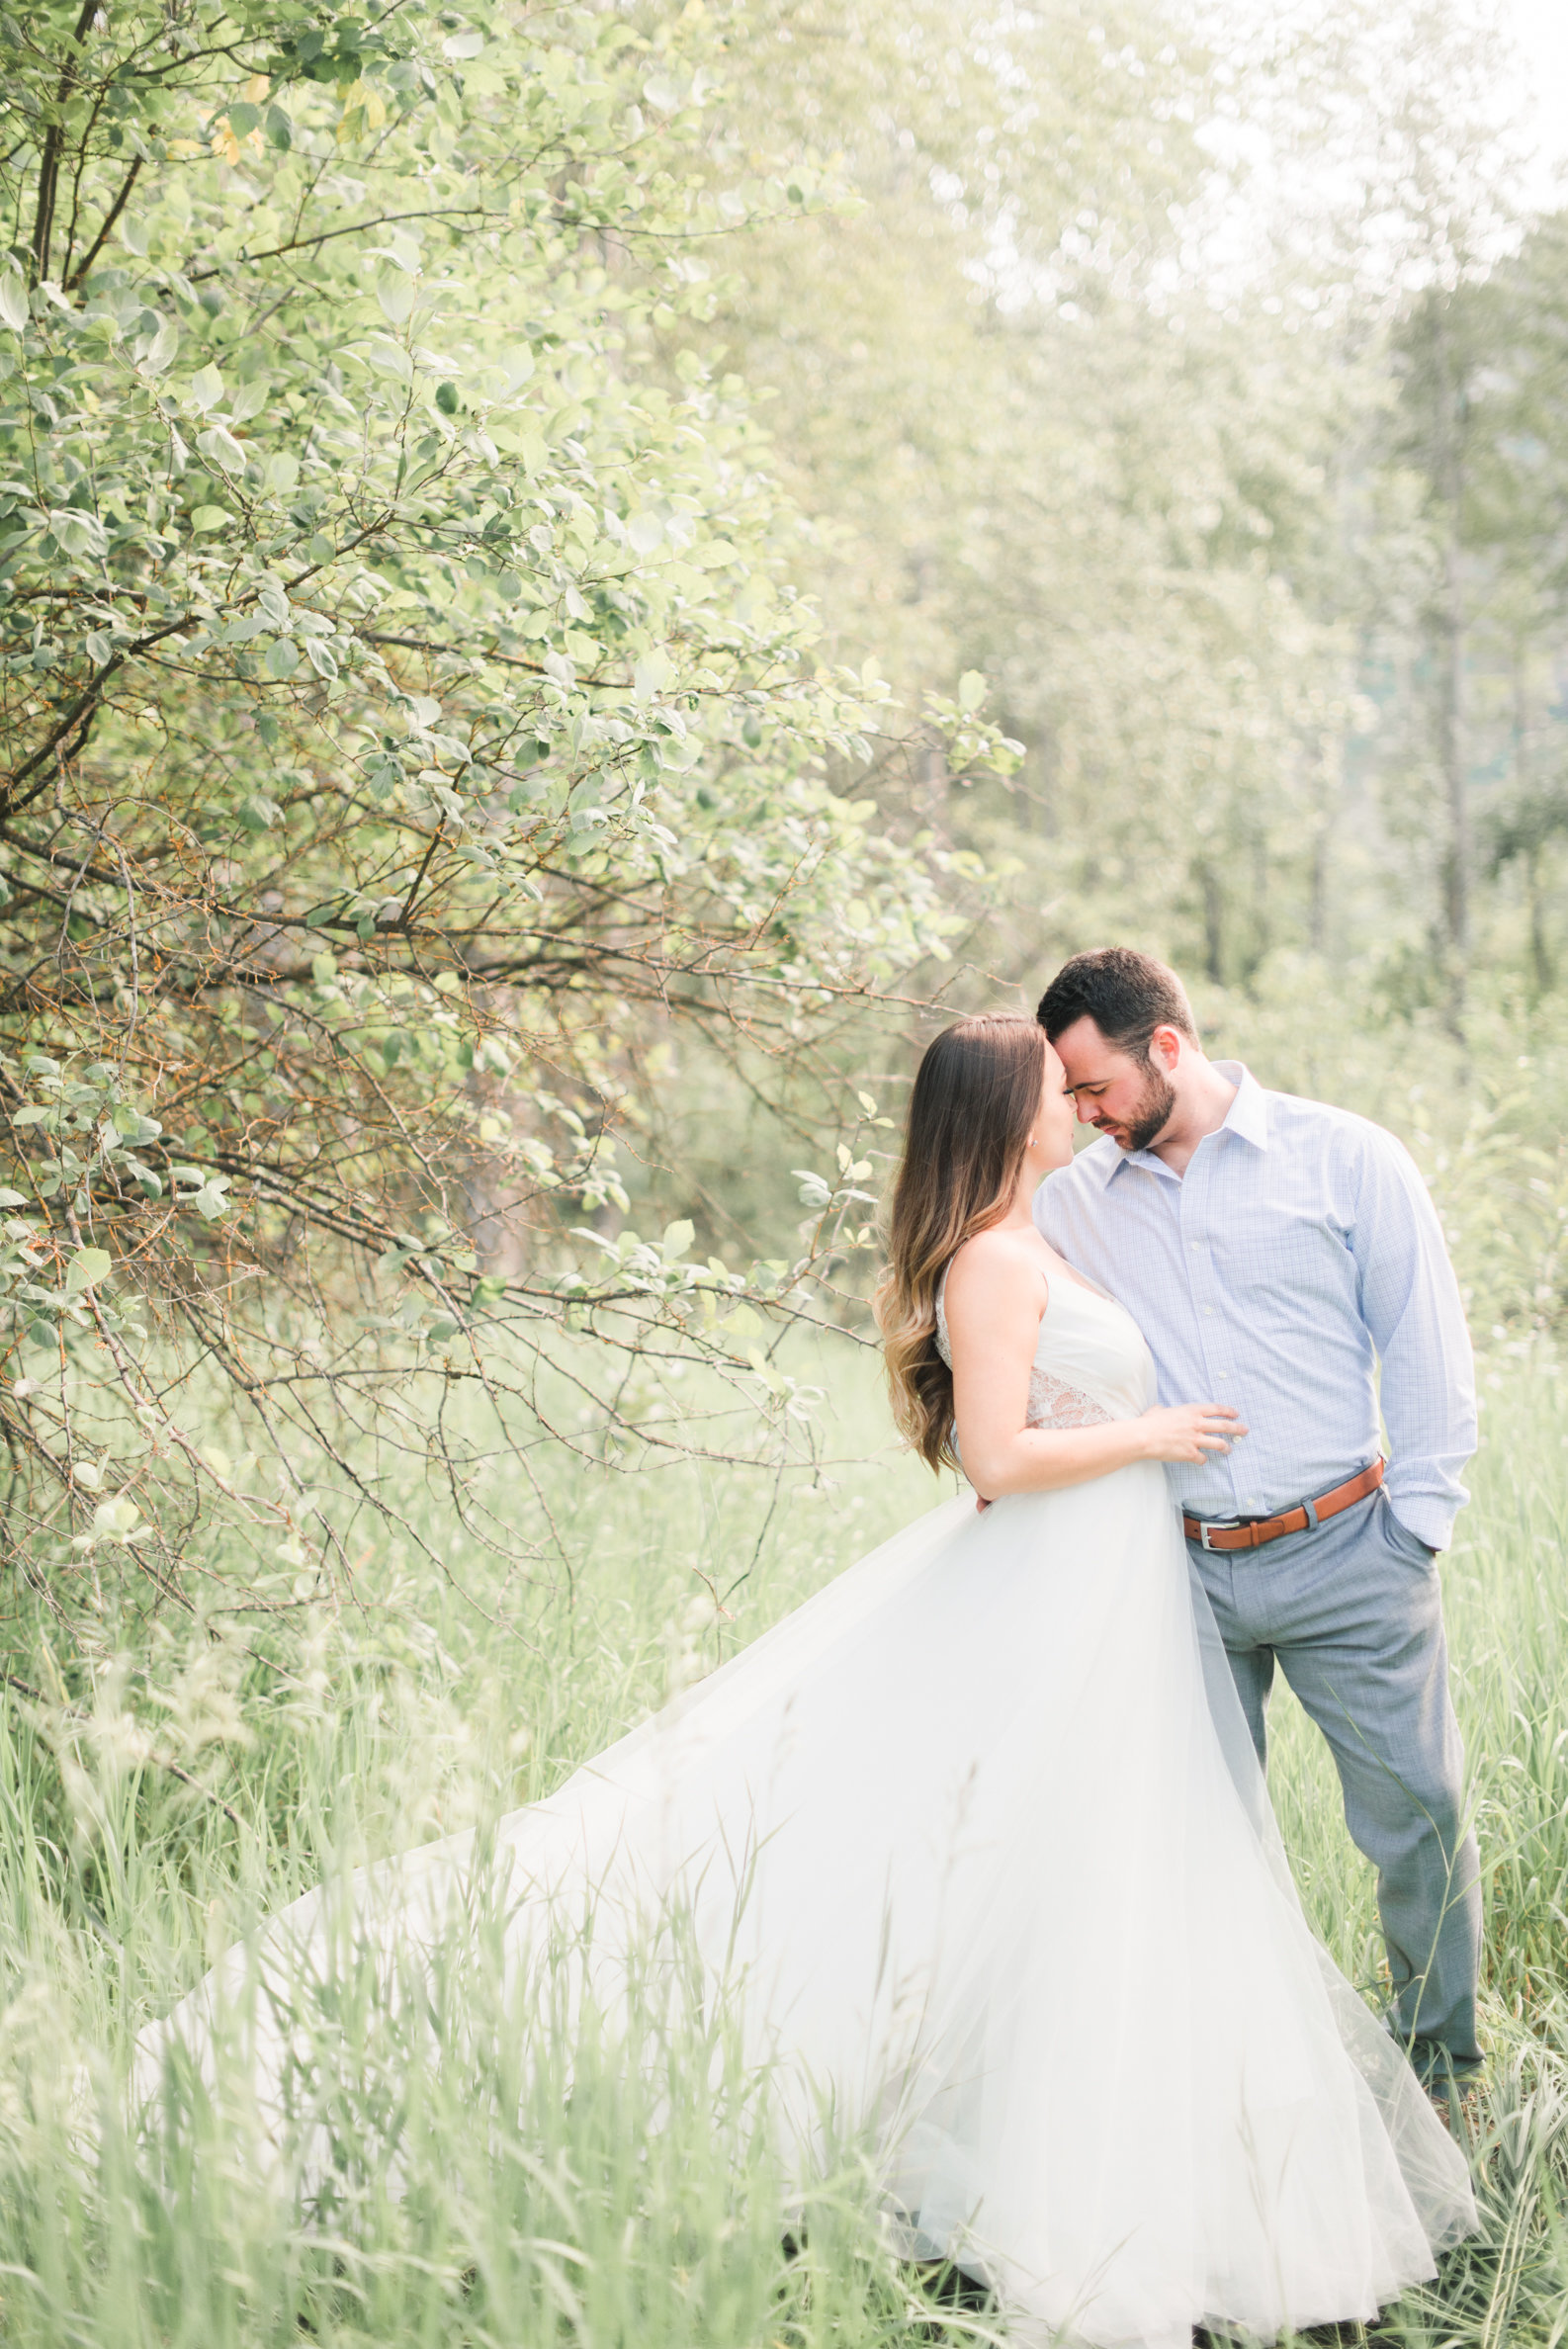 leavenworthweddingphotographer-5